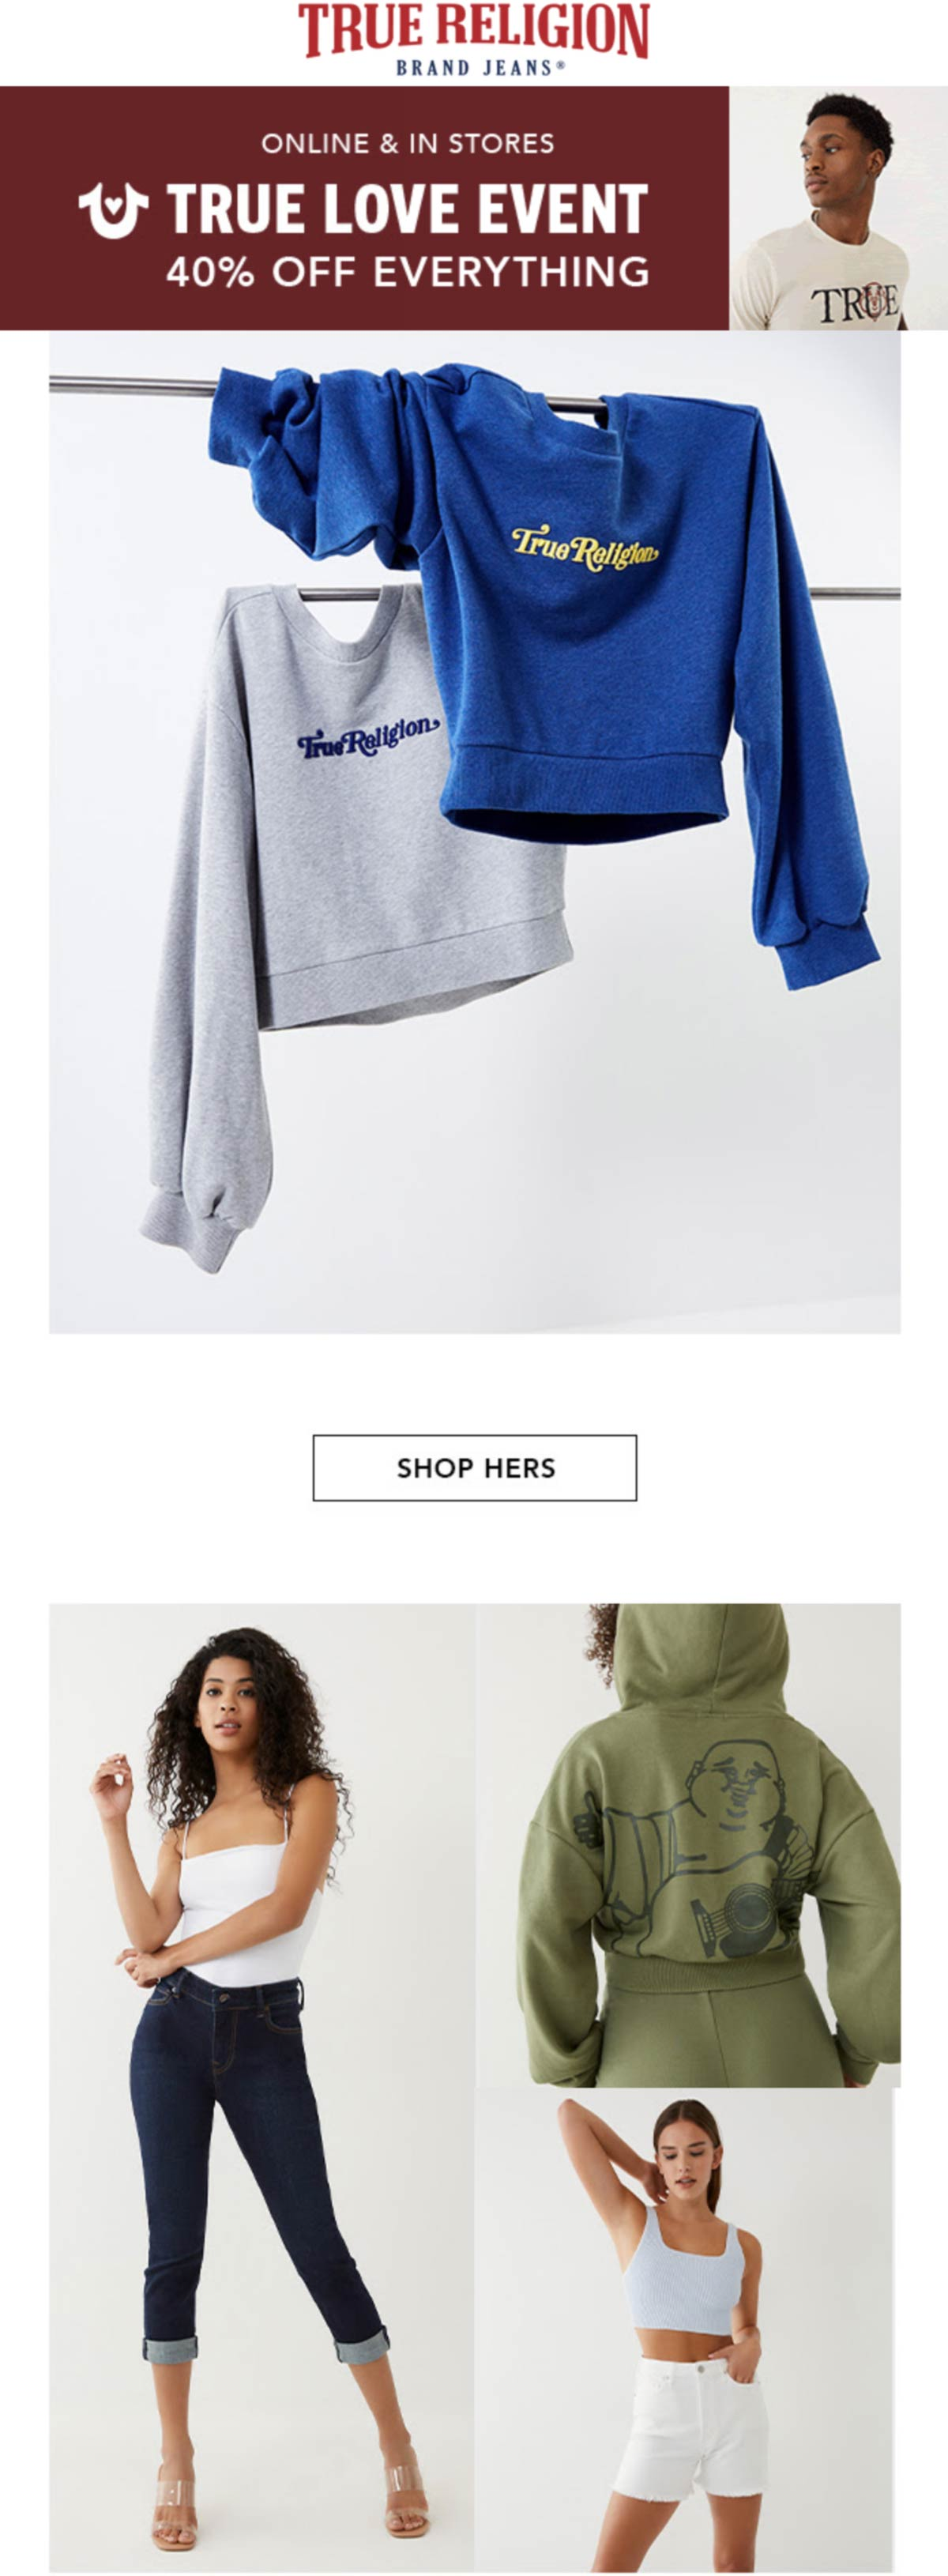 True Religion stores Coupon  40% off everything at True Religion, ditto online #truereligion